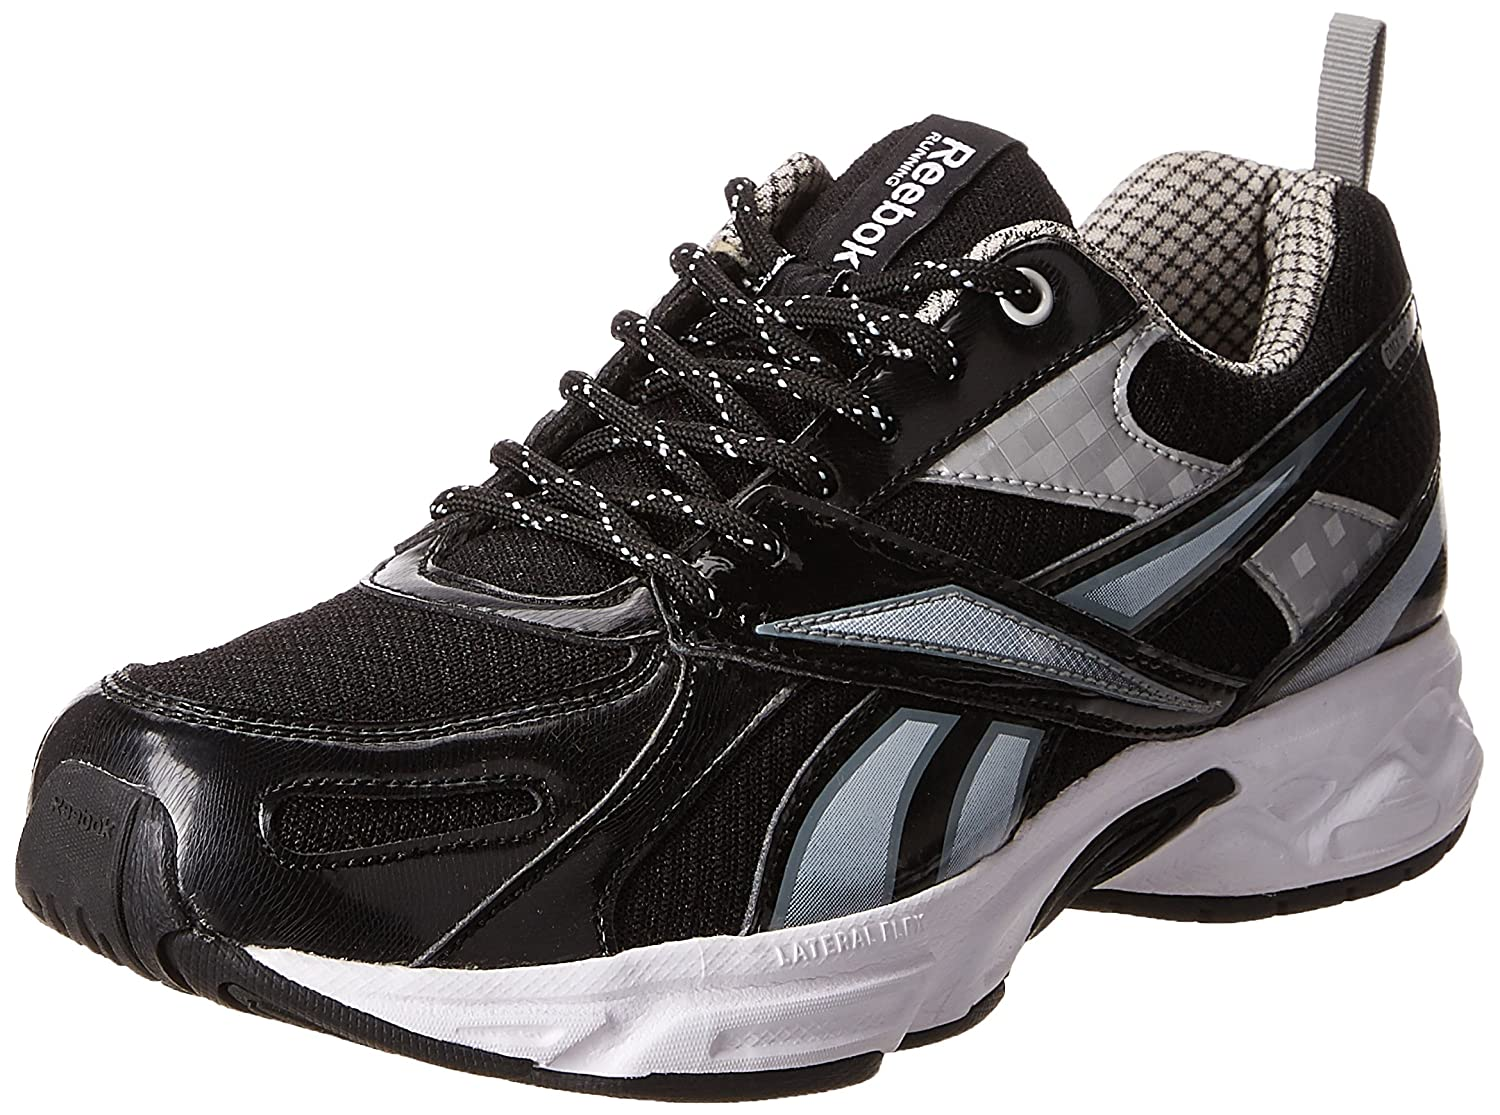 ddafc4461f7 Reebok Men s Acciomax 5.0 Running Shoes  Buy Online at Low Prices in India  - Amazon.in